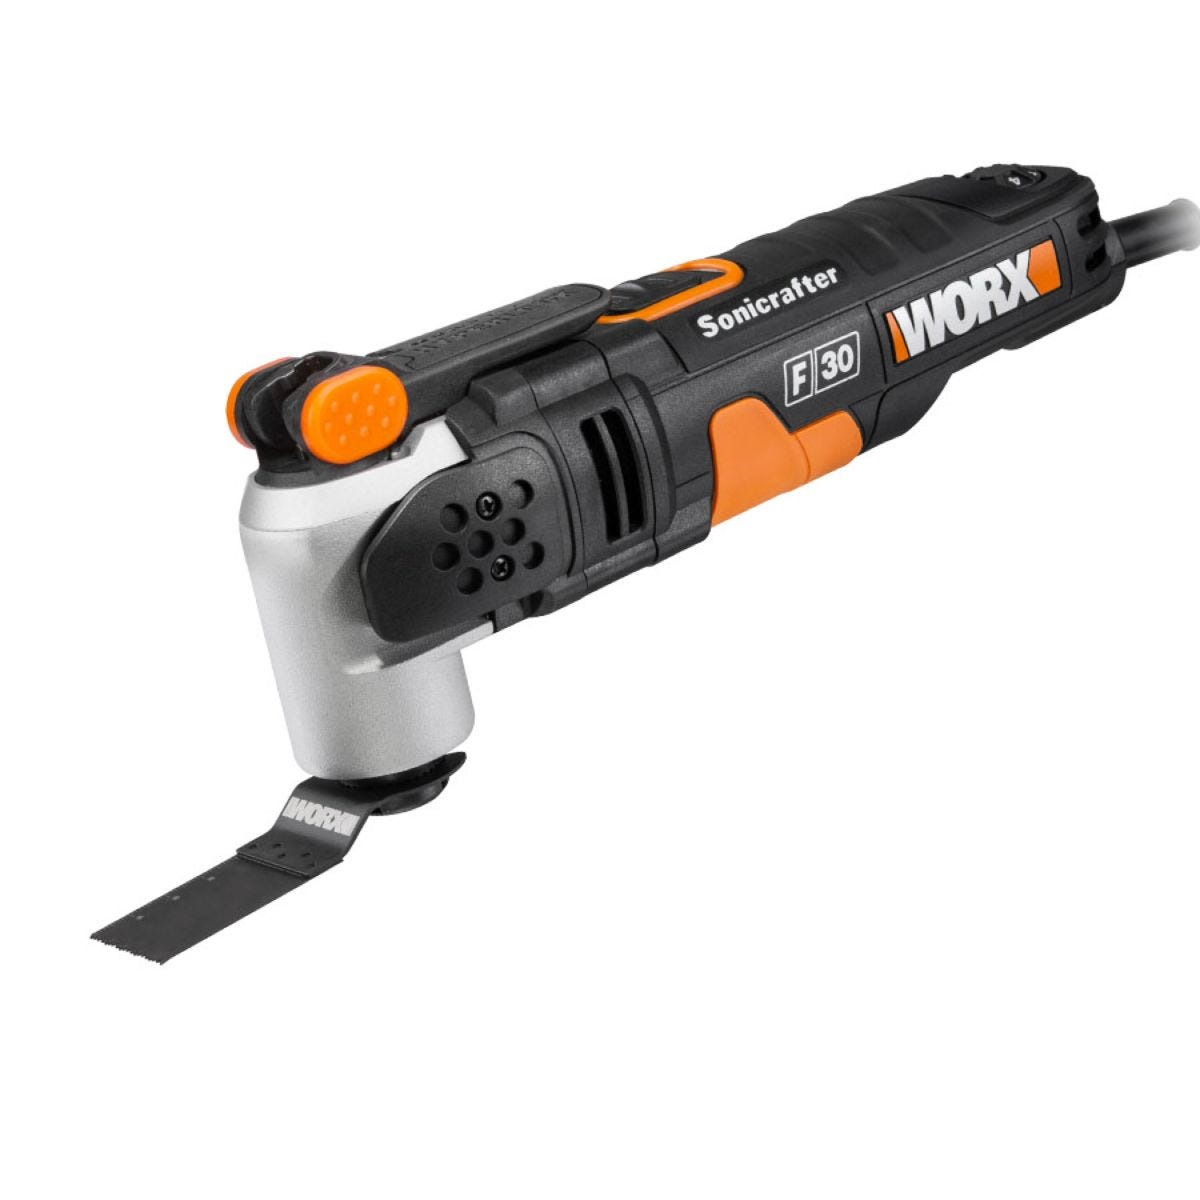 Worx Sonicrafter F30 350W Universal Oscillating Multi-Tool with 29-Piece Accessory Kit